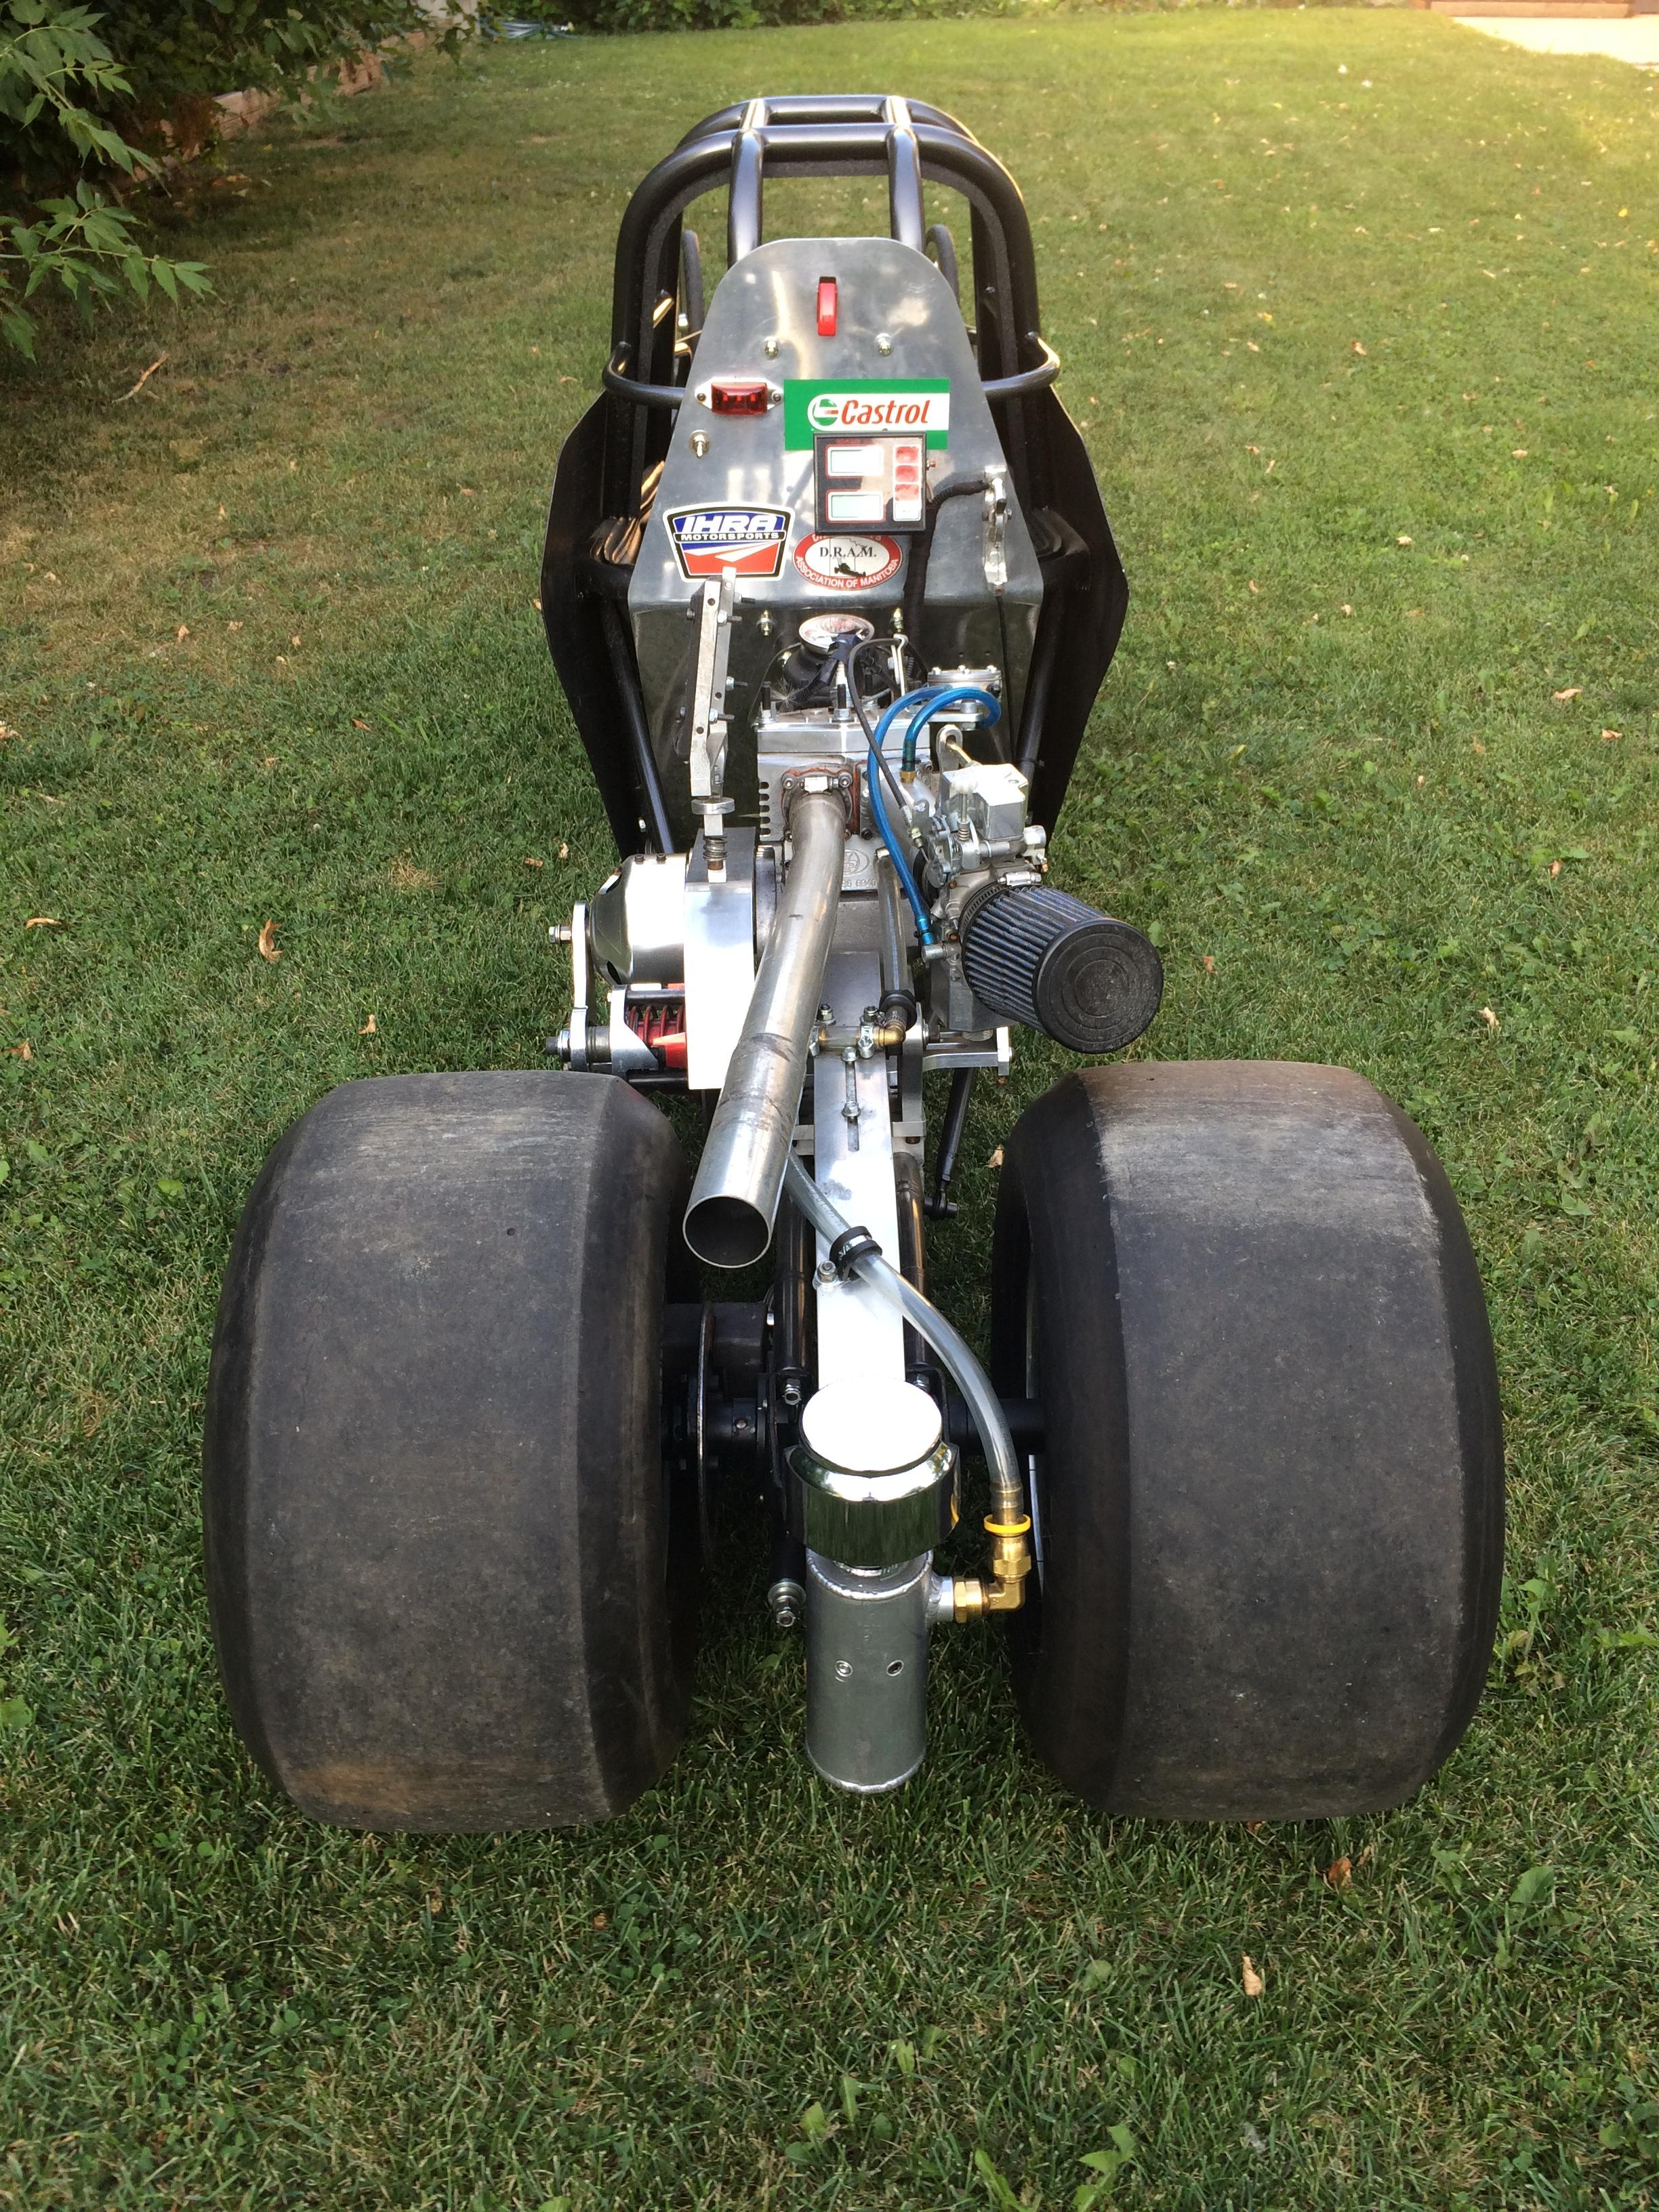 Junior Dragster Drag Car For Sale - $4680